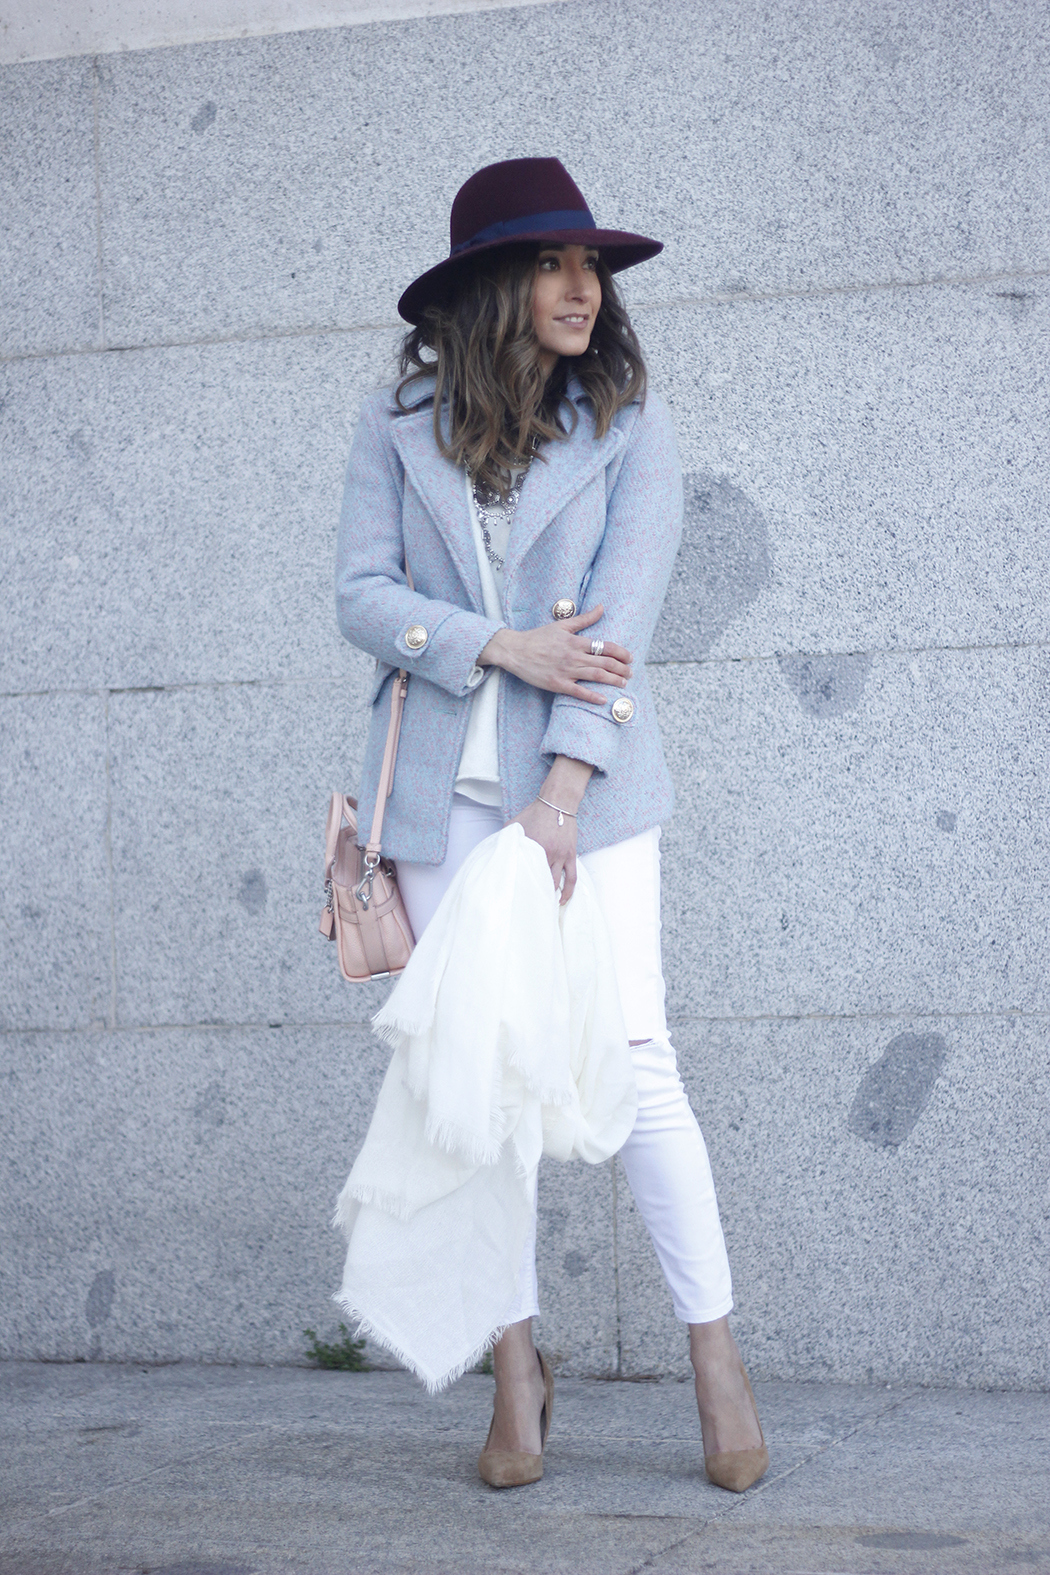 Blue Coat White outfit burgundy hat pink bag coach accessories style19